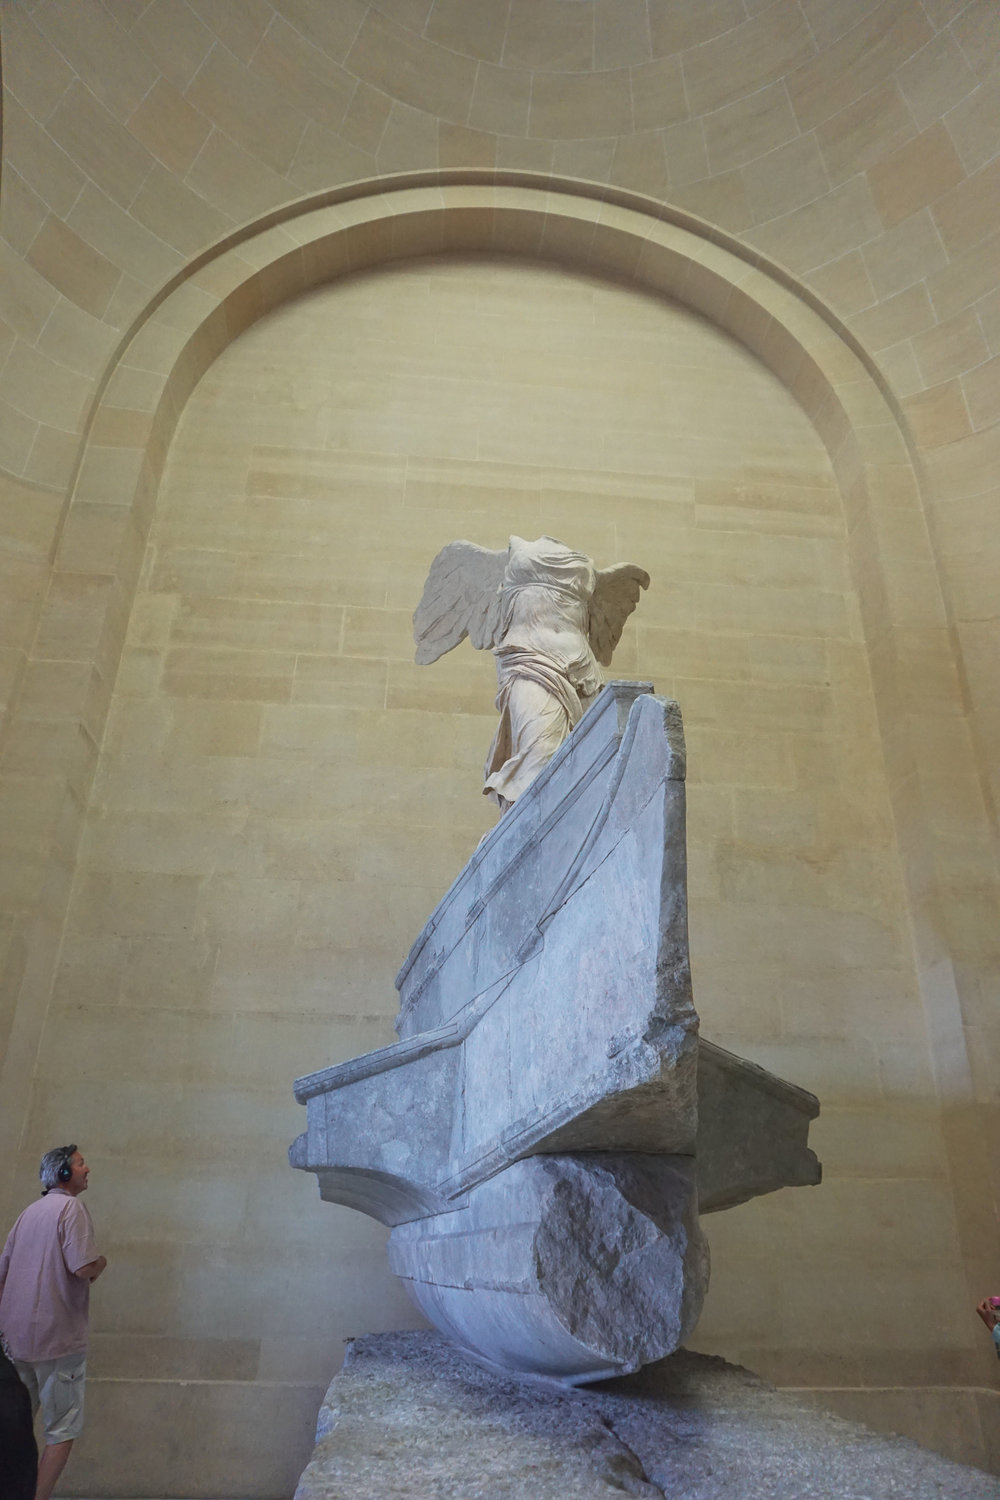 The Winged Victory of Samothrace, which dominates an enormous hallway